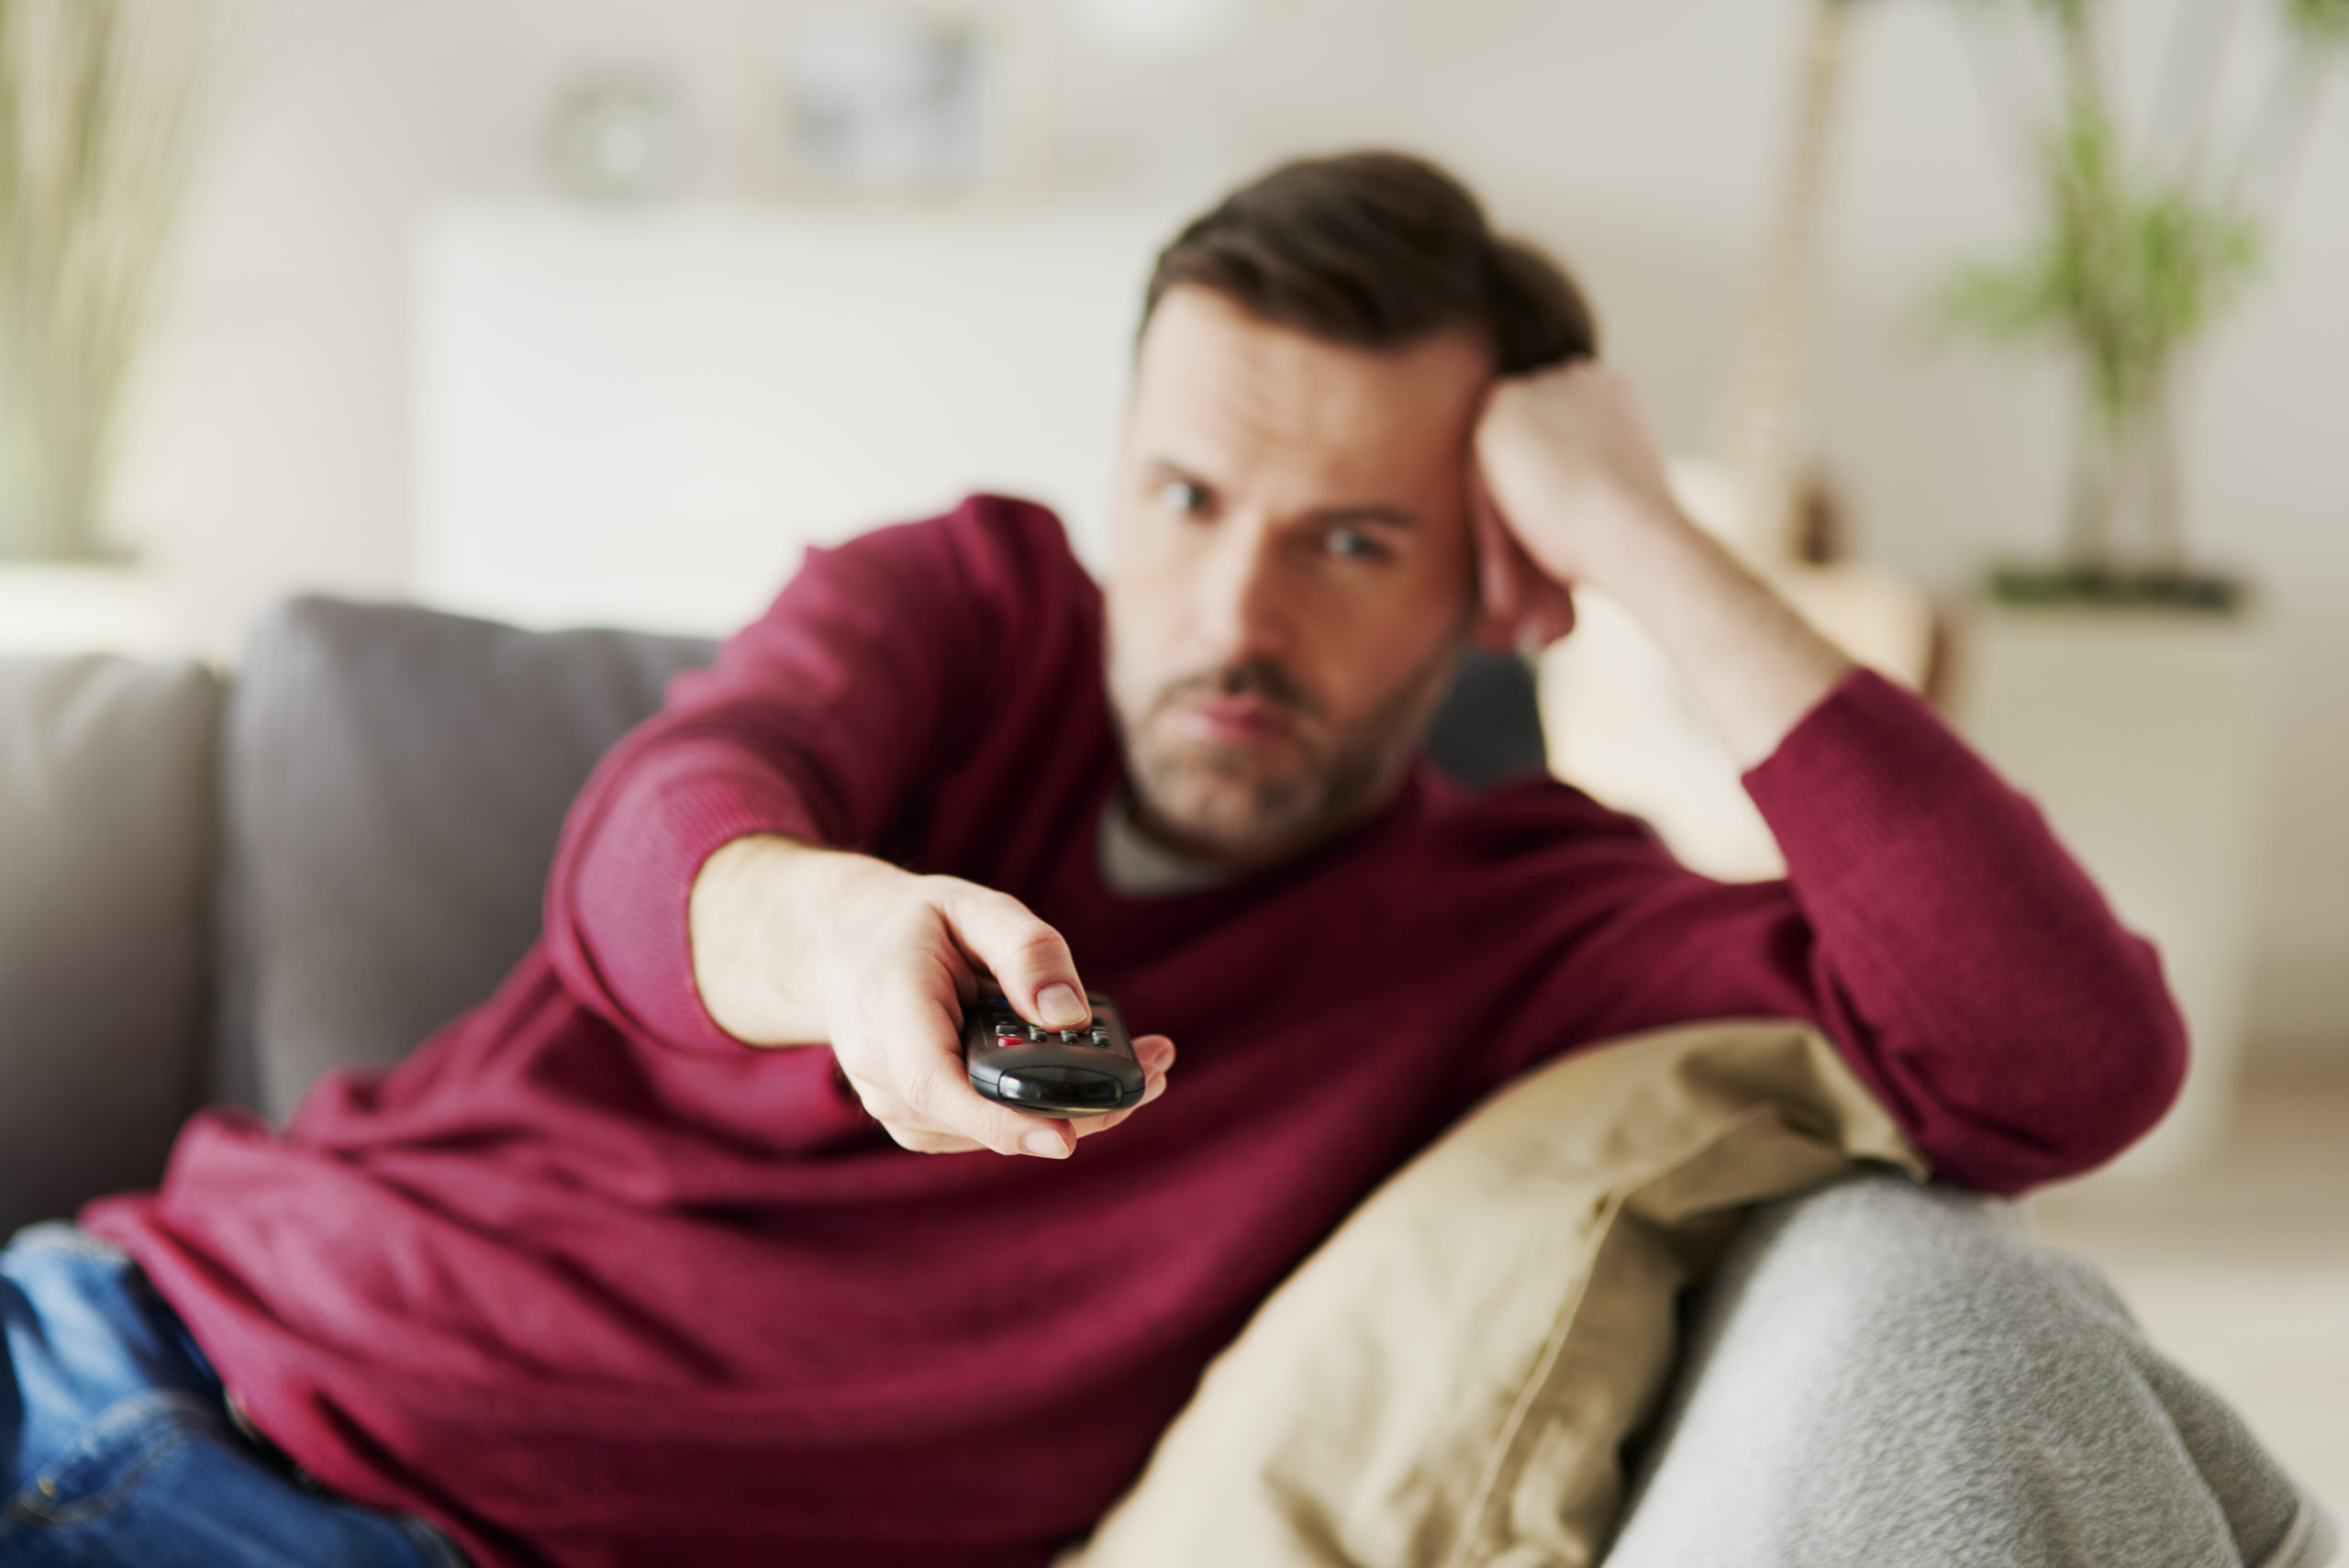 https://elements.envato.com/bored-man-holding-a-remote-and-watching-tv-XBTNVMD